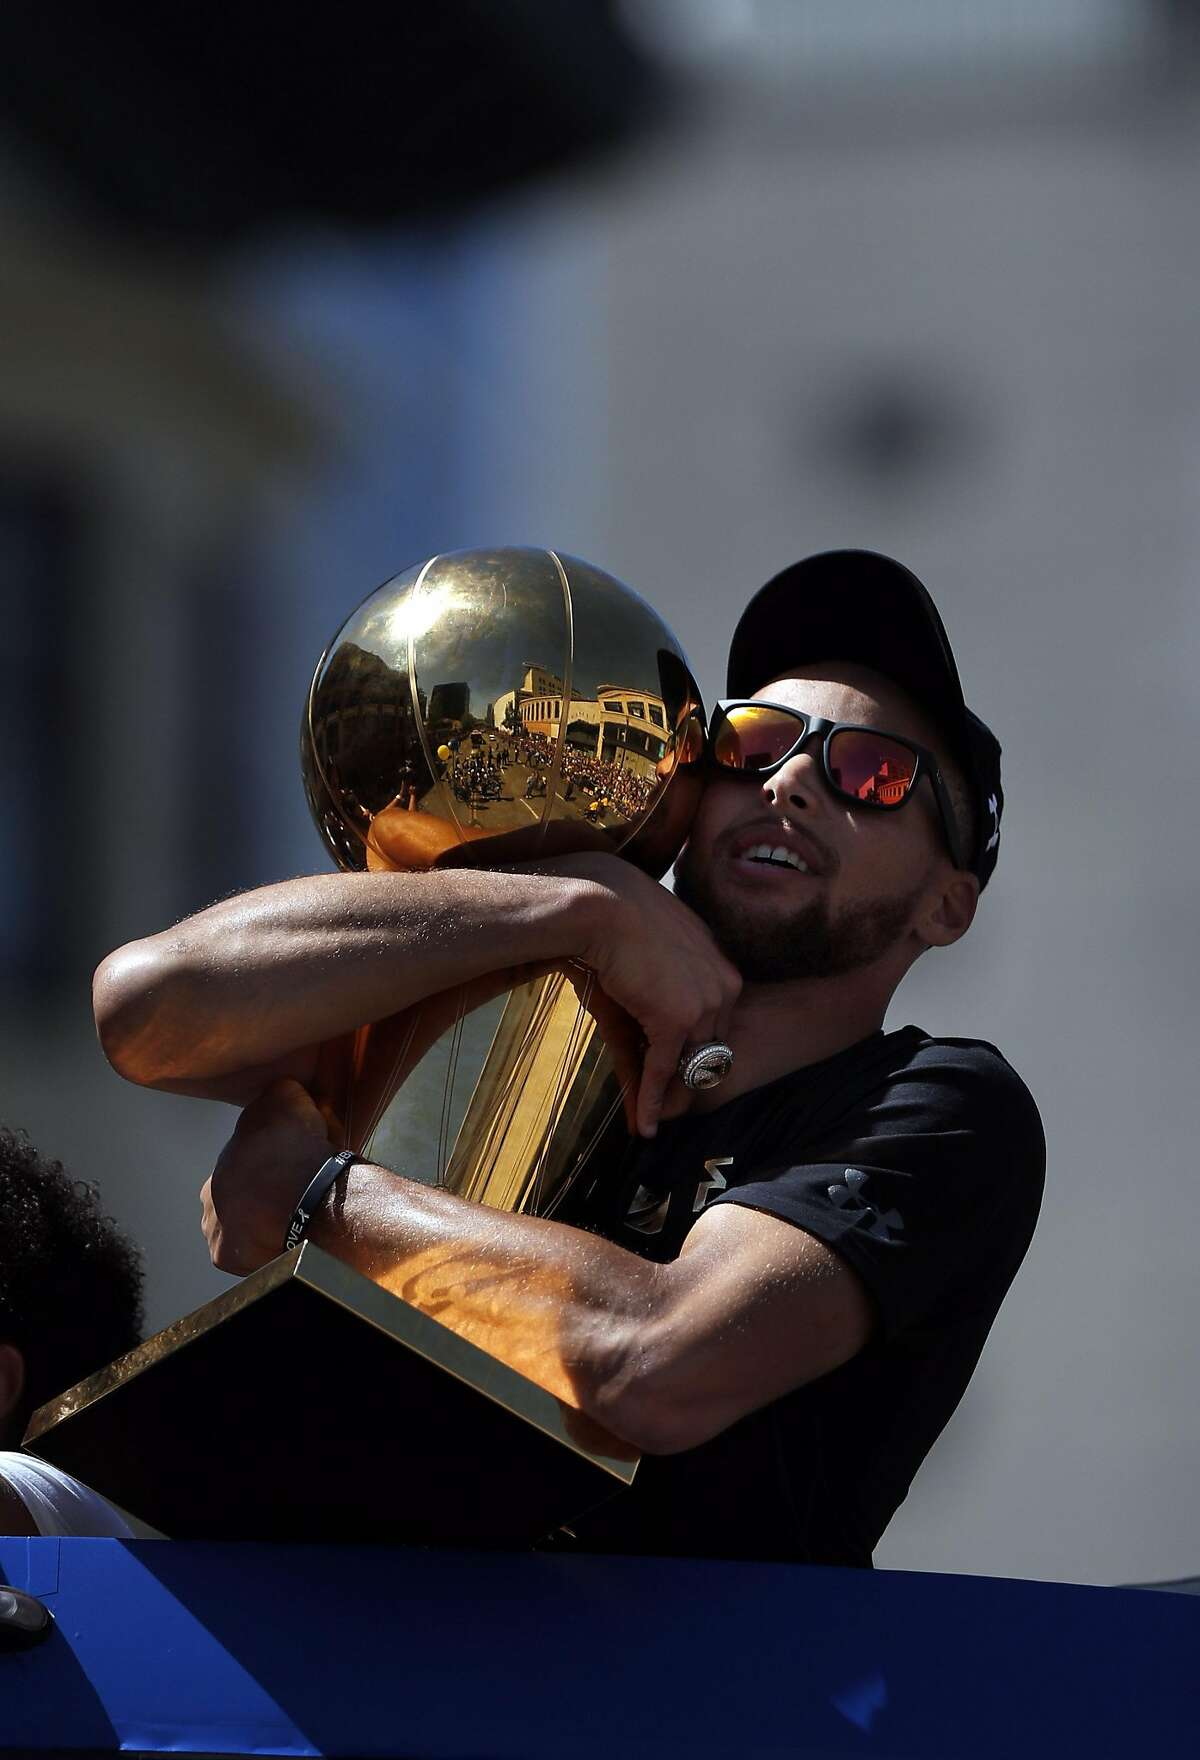 Stephen Curry hugs the Larry O'Brien Trophy as the Golden State Warriors celebrated their NBA Championship with a victory parade in Oakland, Calif., on Thursday, June 15, 2017.